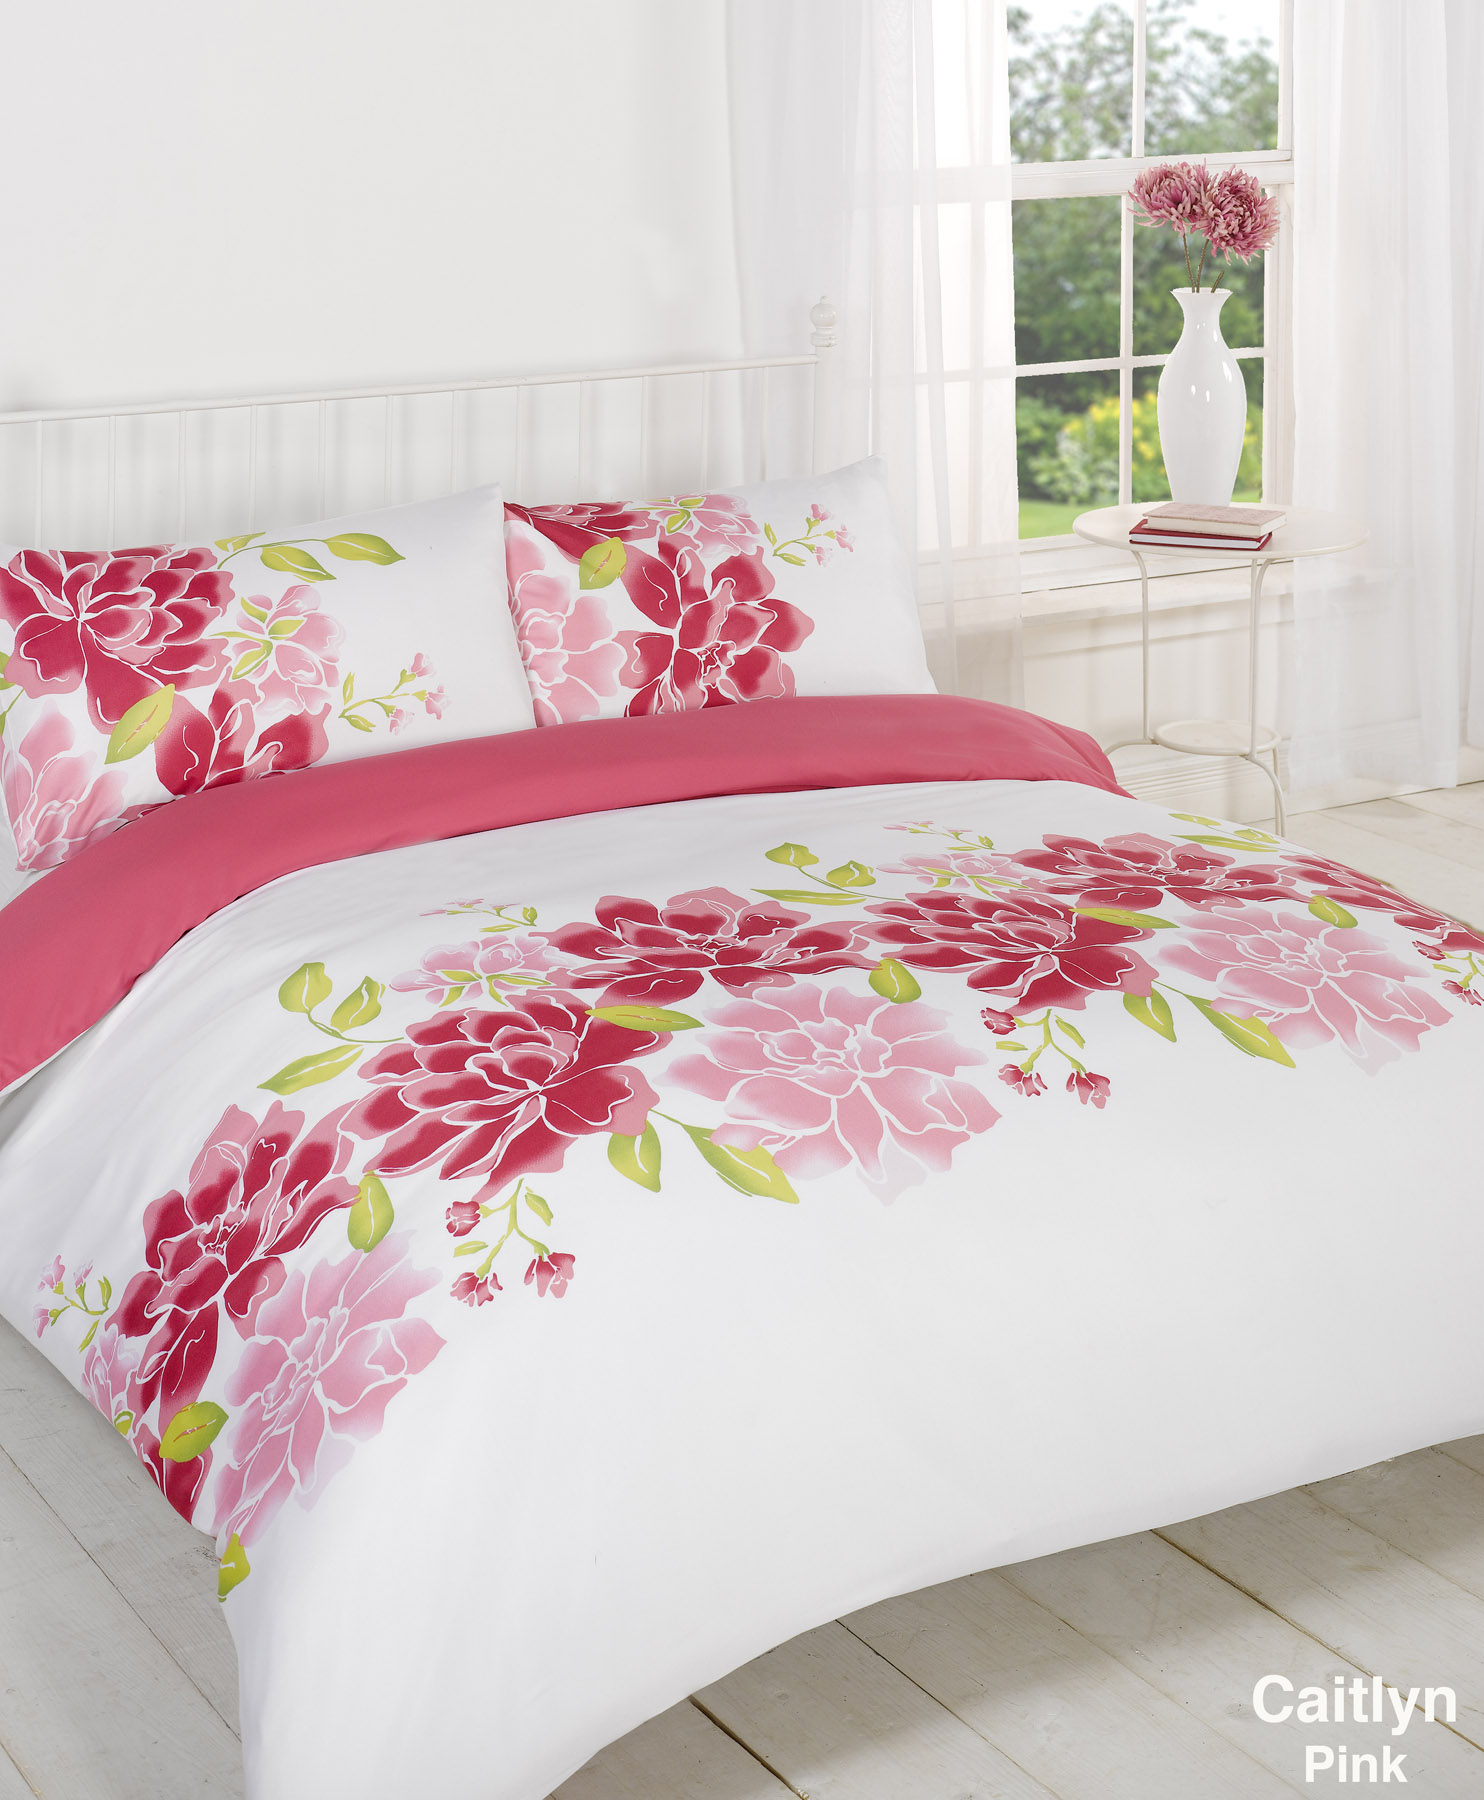 Shop patterned duvet covers and printed duvet covers in pretty florals, fun prints or stripes at Garnet Hill. Pink Sterling Mums Hemstitched Supima® Percale Bedding Double and Queen Sets include 1 flat sheet, 1 fitted sheet and 2 standard cases. King Set includes 1 flat sheet, 1 fitted sheet and 2 king cases. Additional cases may be.